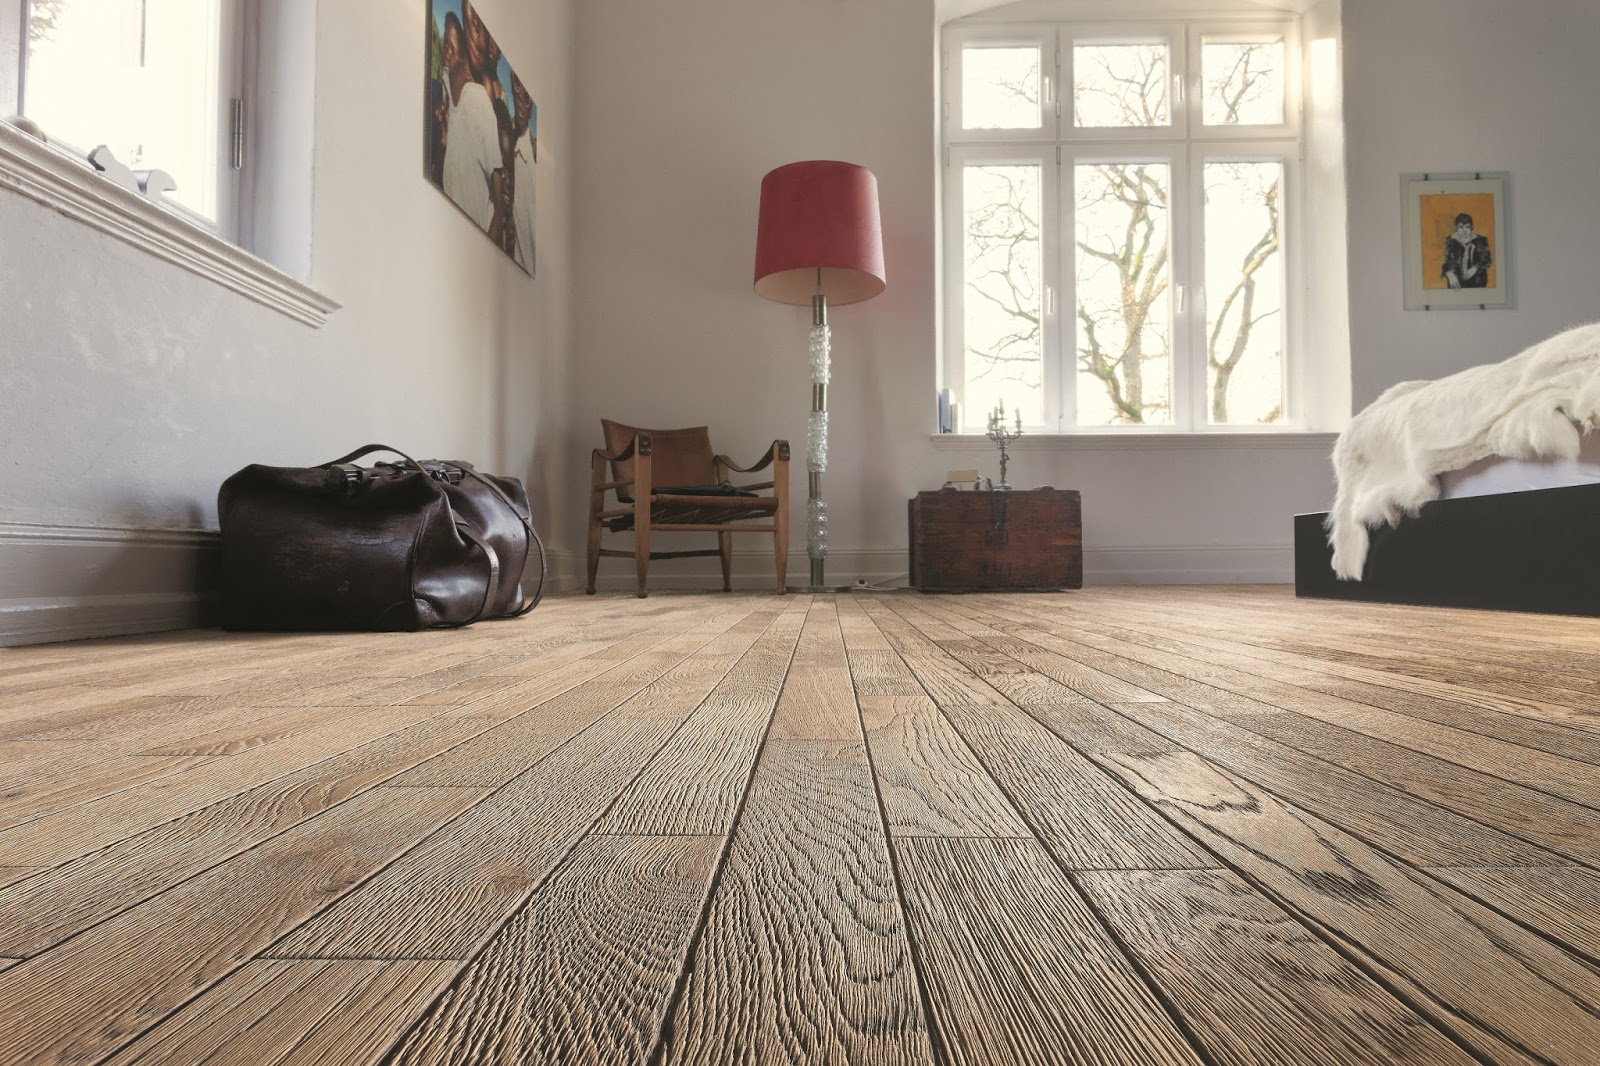 7 reasons to choose parquet | Real Wood Quality Floors in Europe